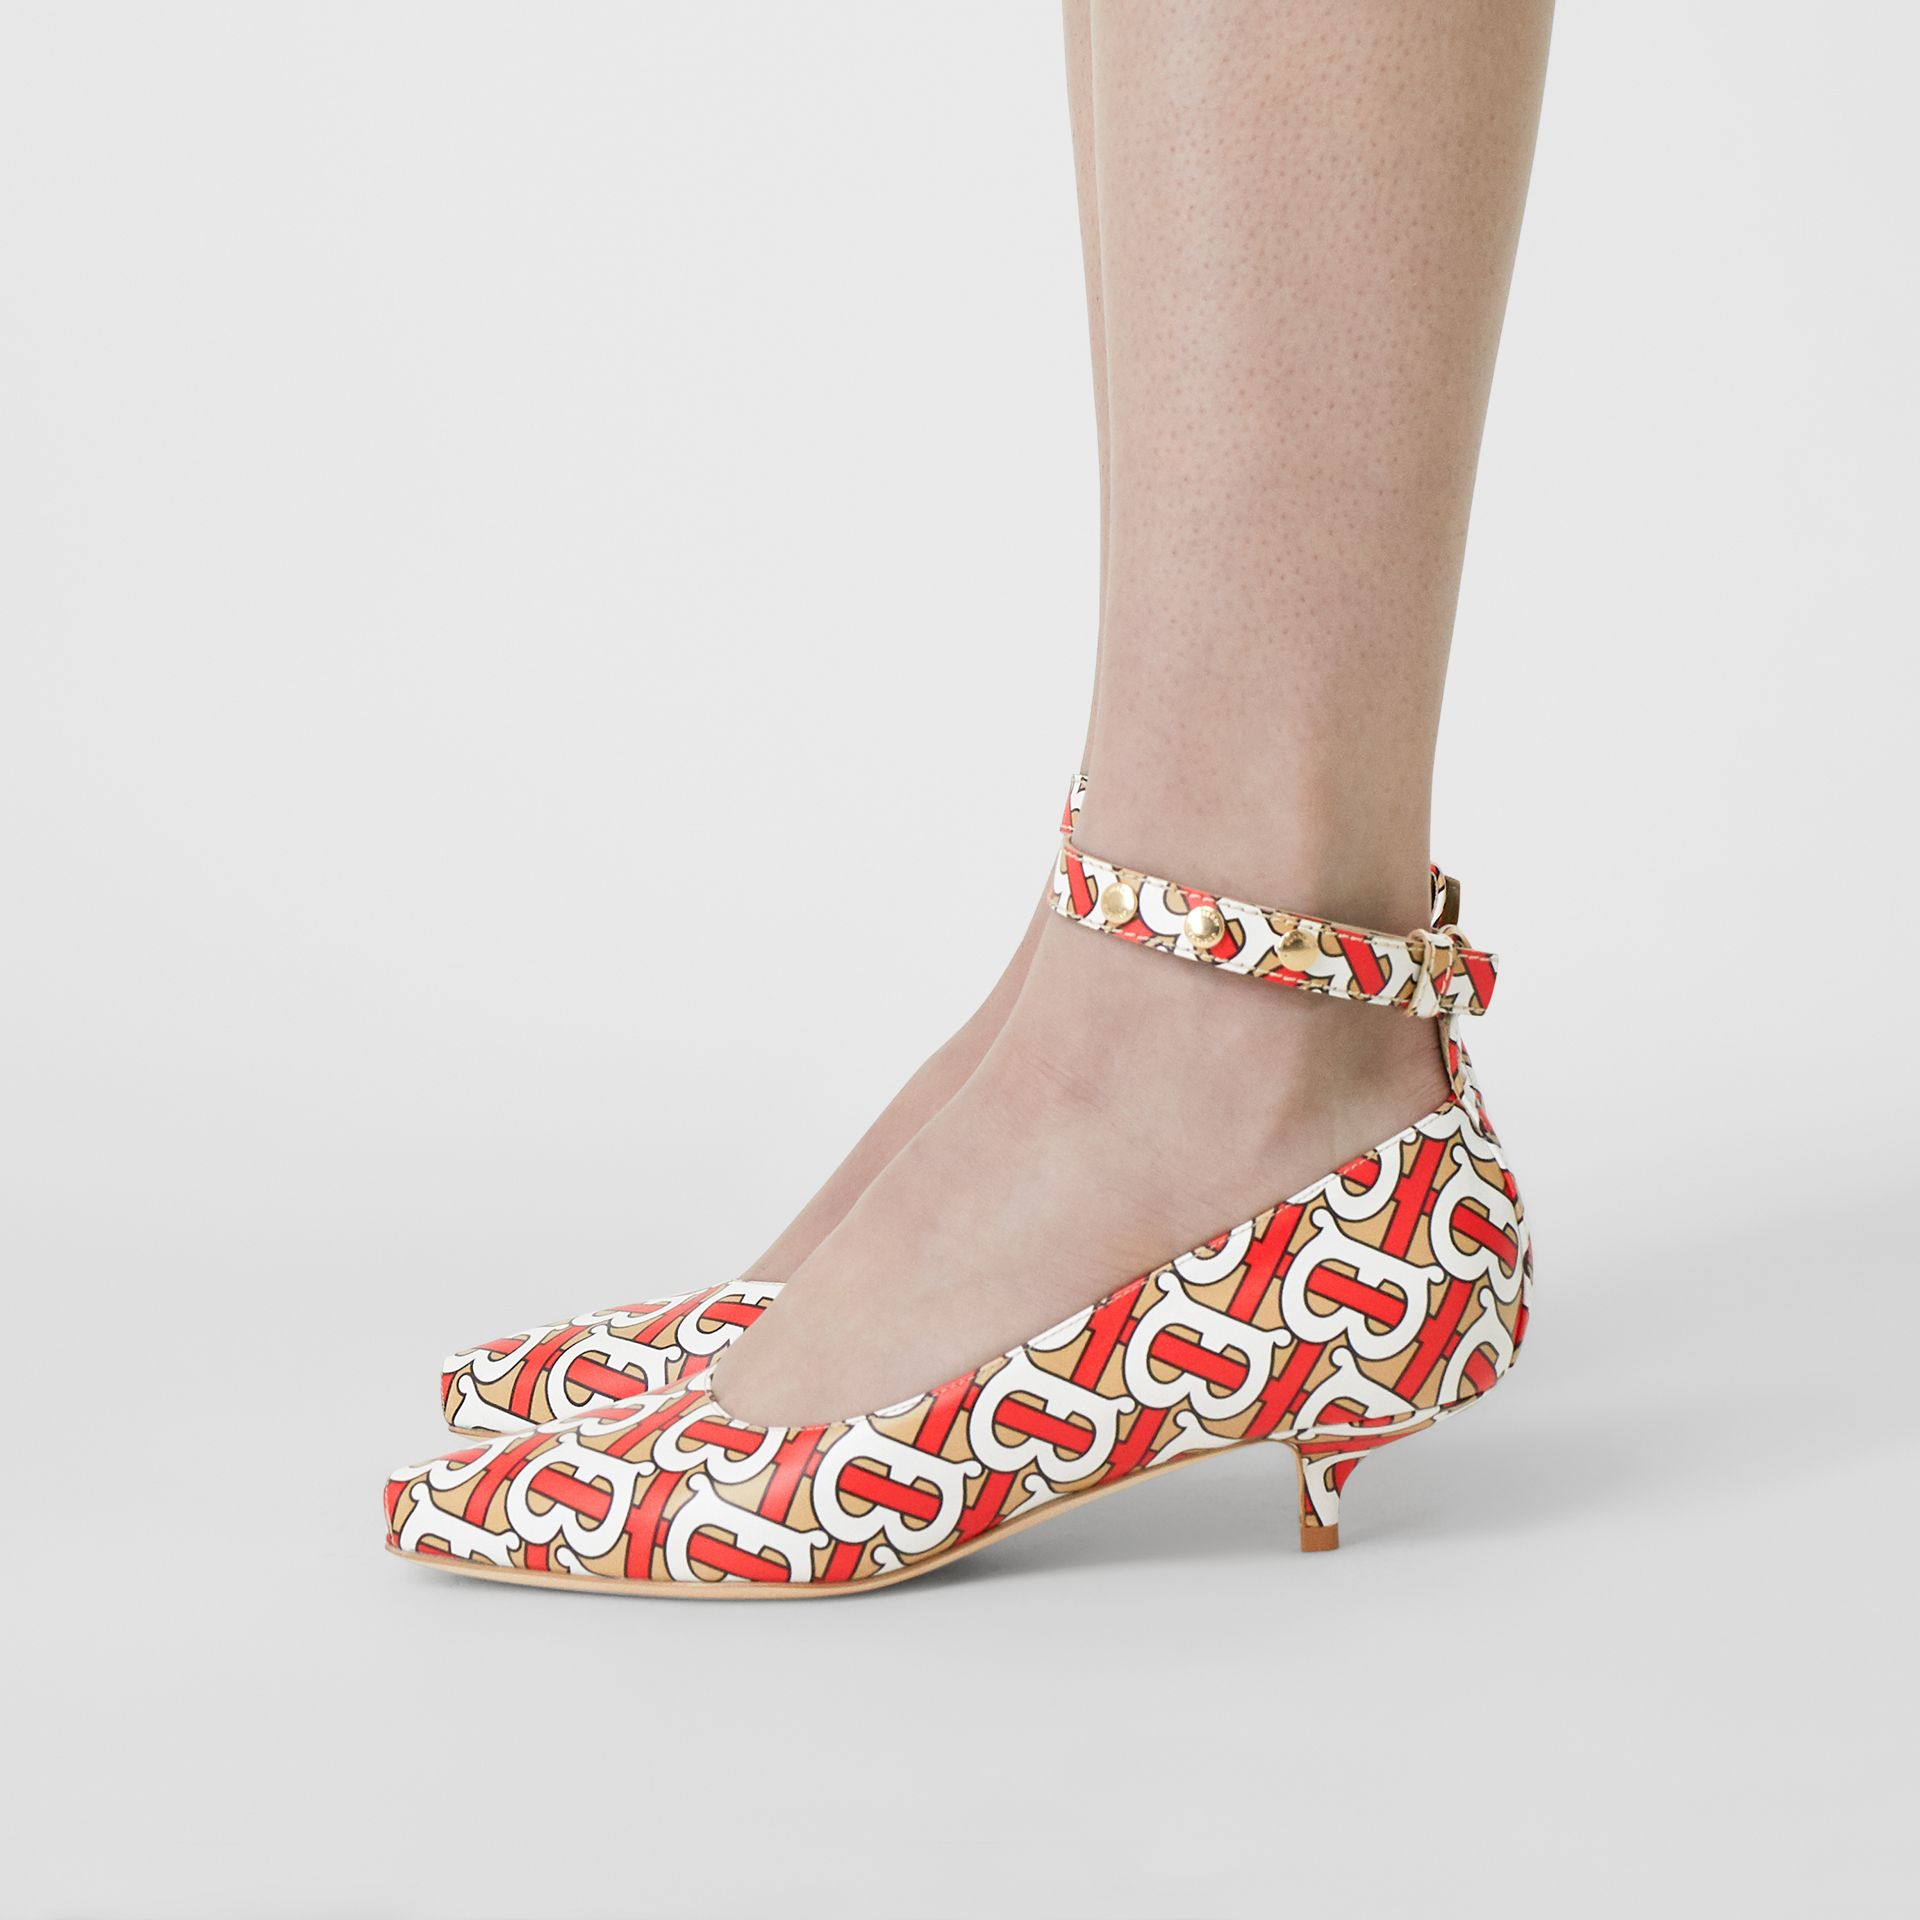 Monogram Print Leather Peep-toe Kitten-heel Pumps in Tawny - Women | Burberry Australia - gallery image 2